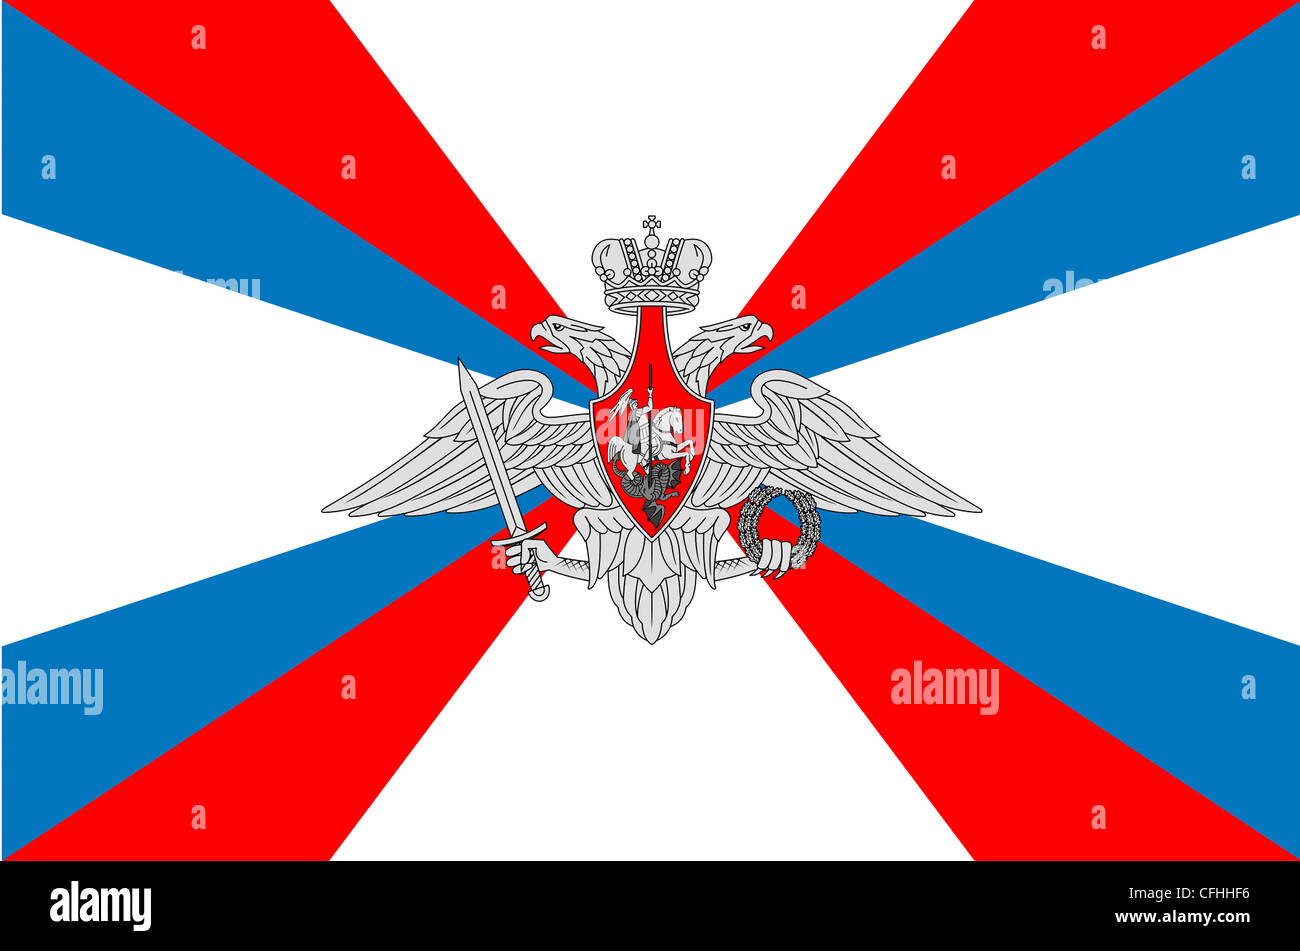 Flag of the Ministry of Defense of the Russian Federation. - Stock Image